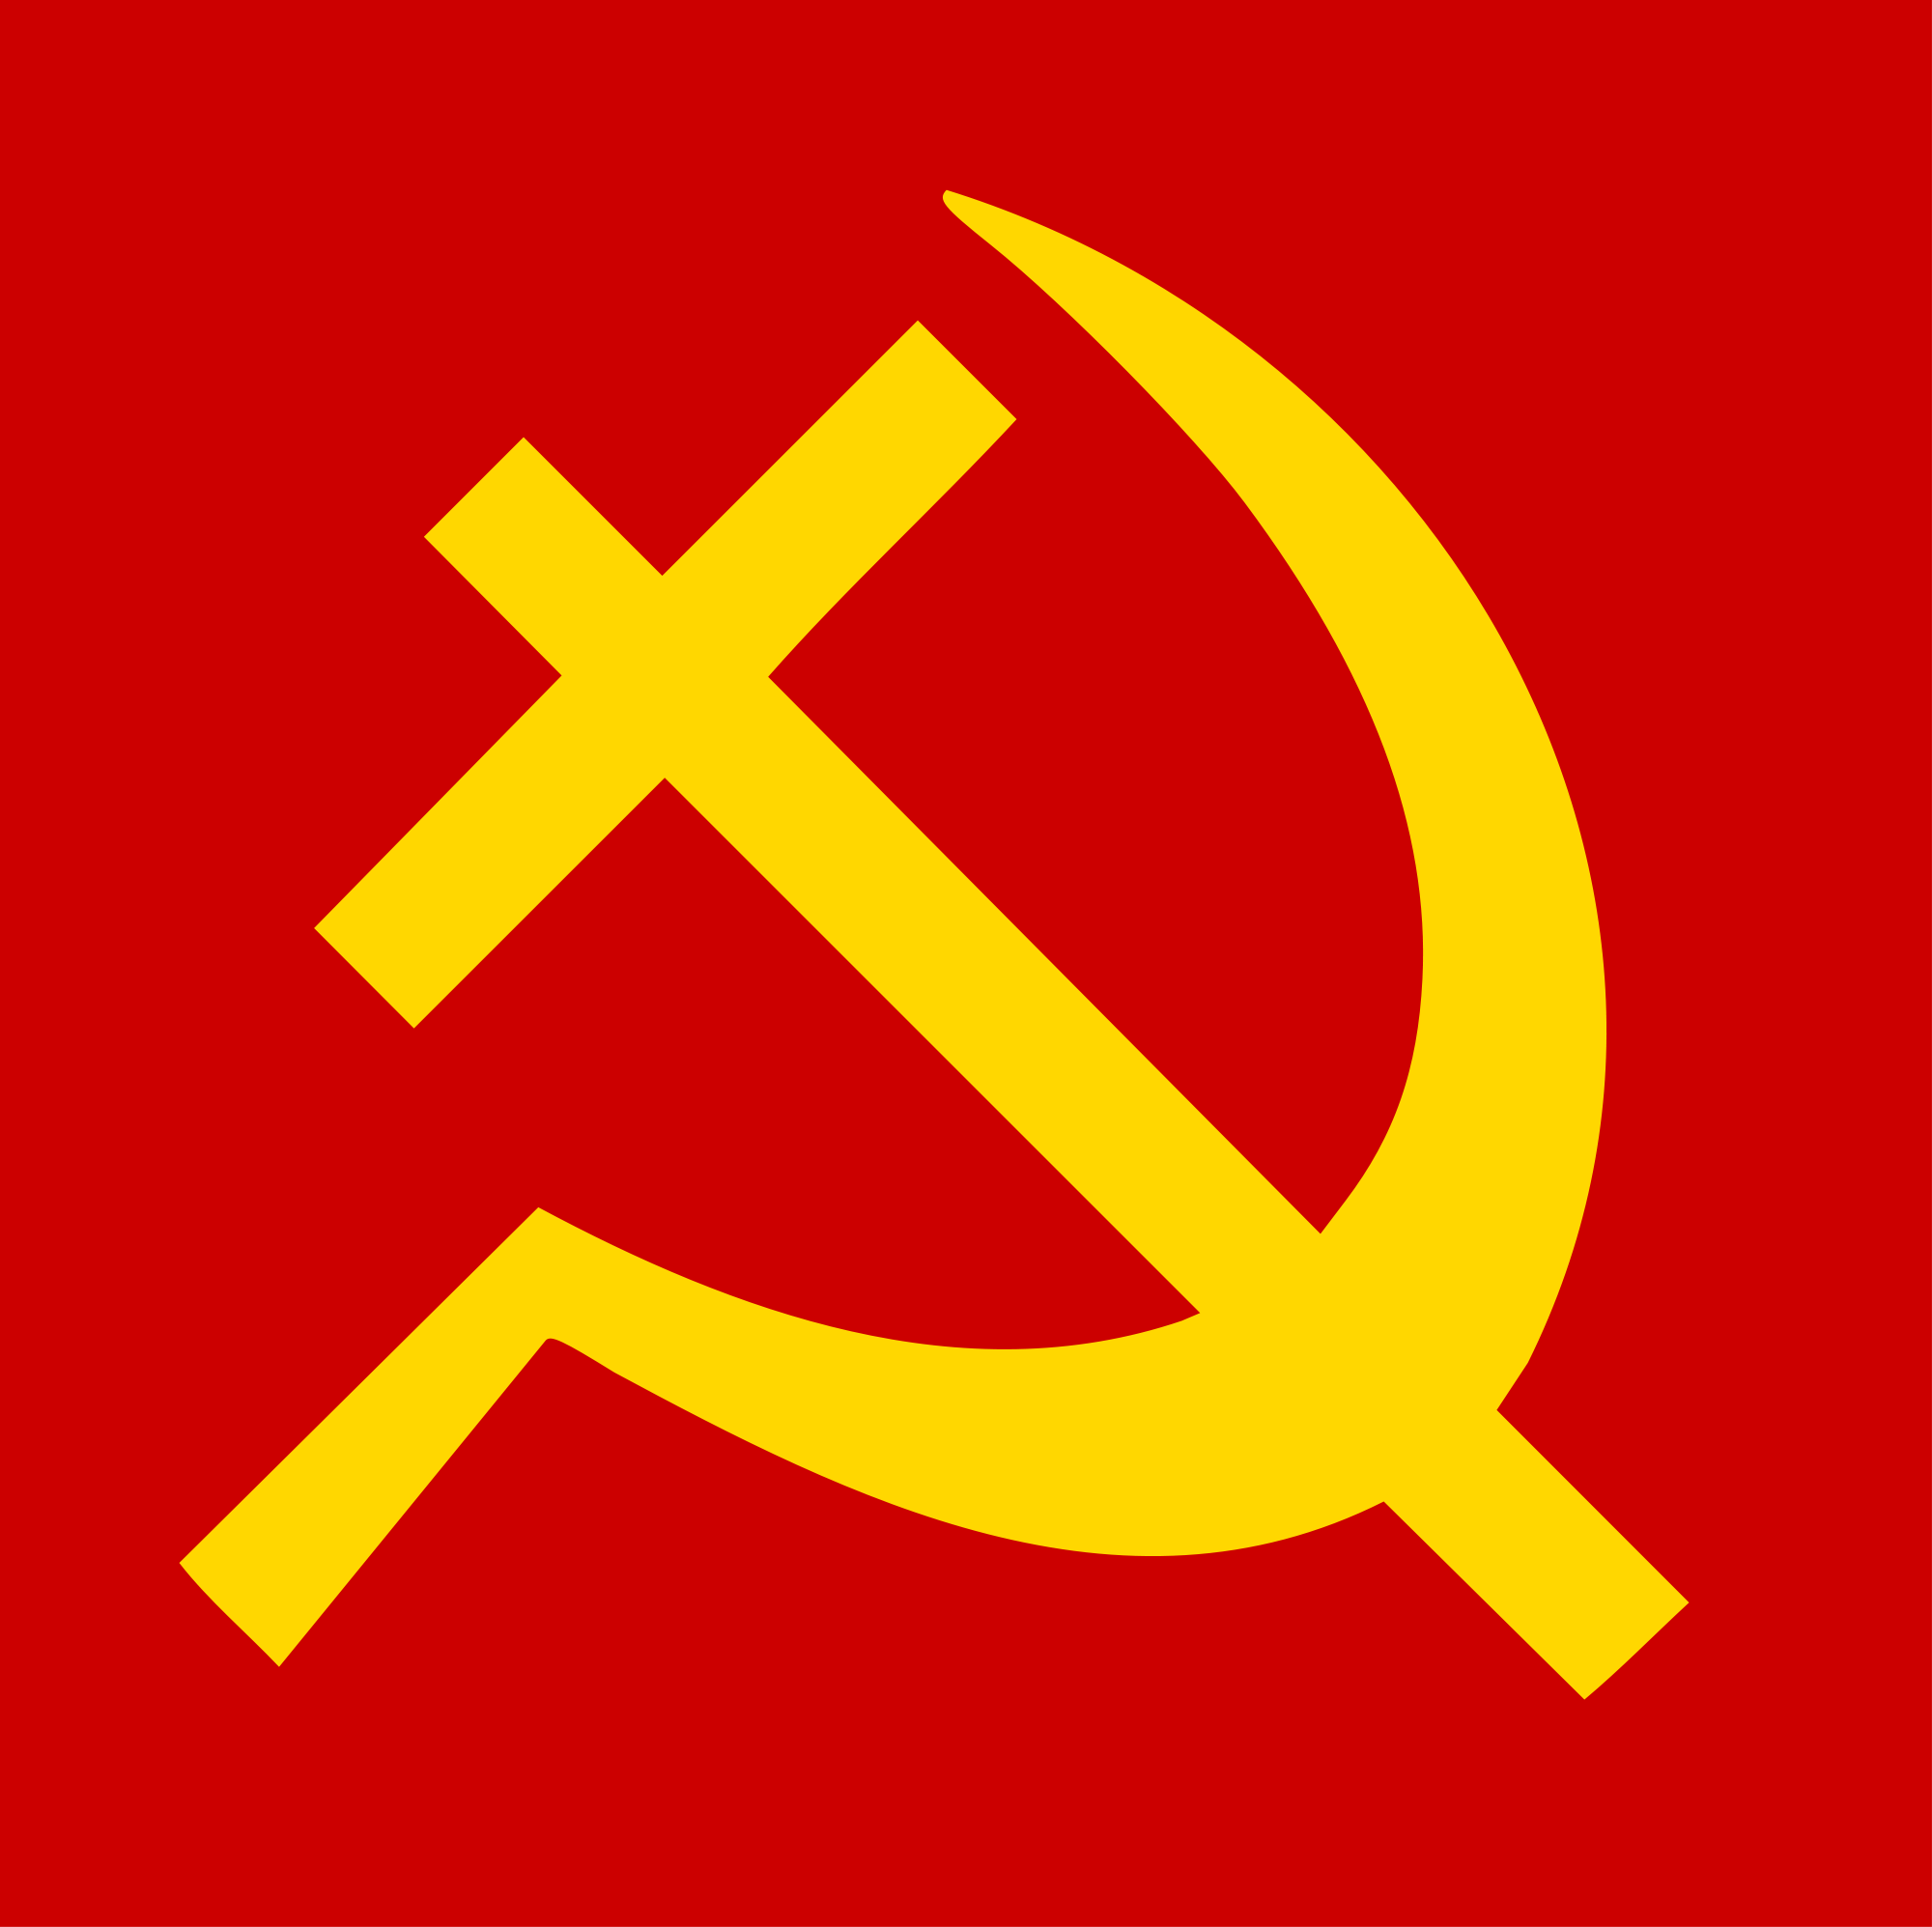 the hammer and sickle of communism was made during the russian the hammer and sickle of communism was made during the russian revolution the hammer stood